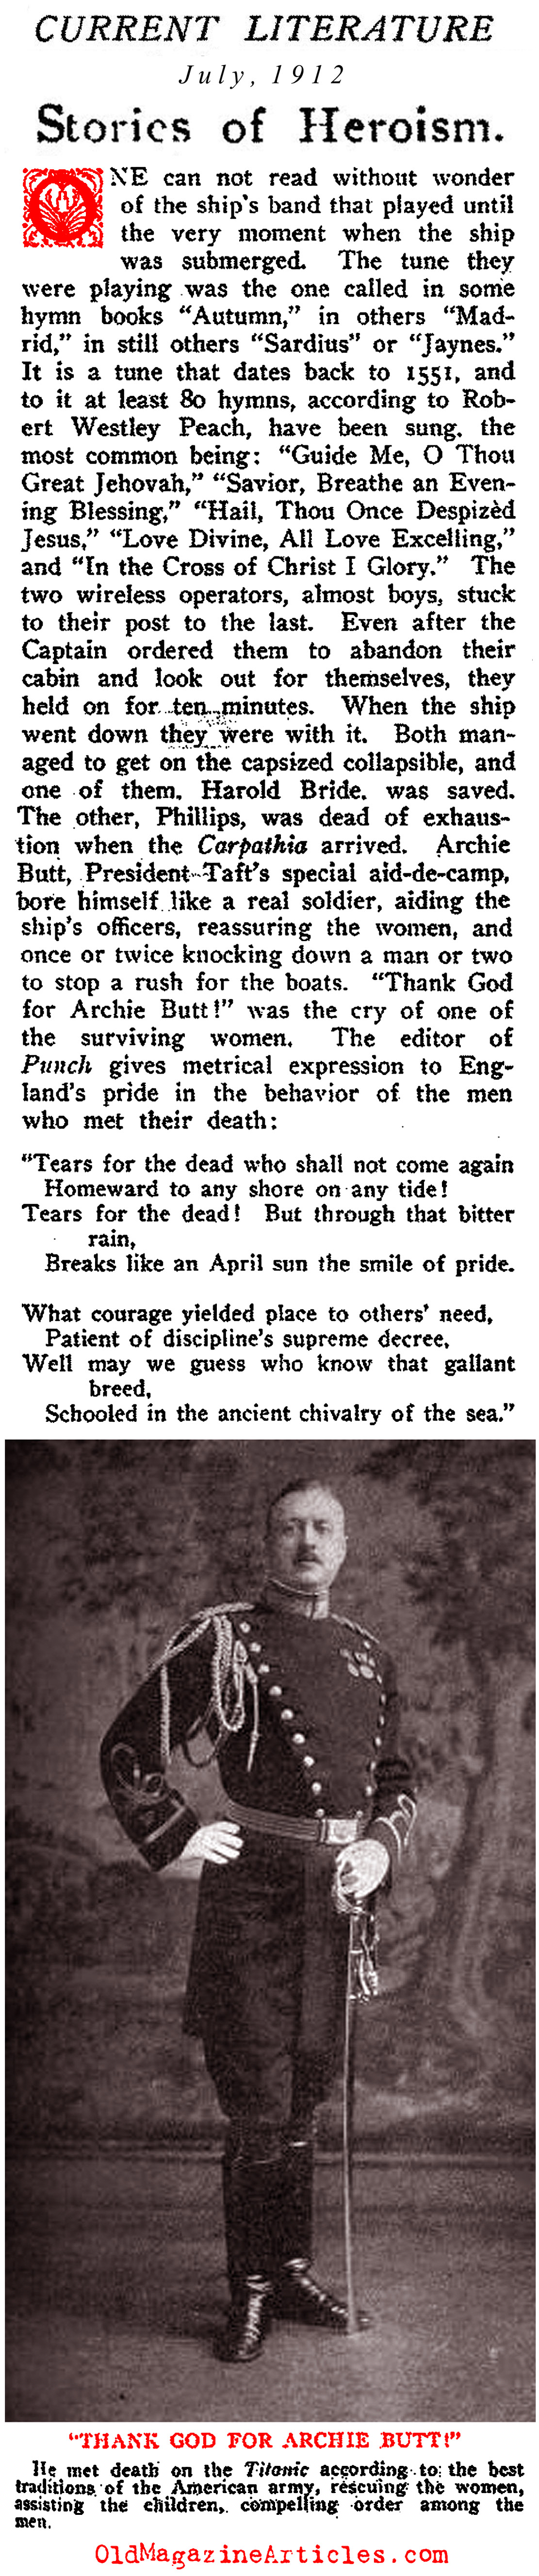 The Stories of Gallantry (Current Literature Magazine, 1912)